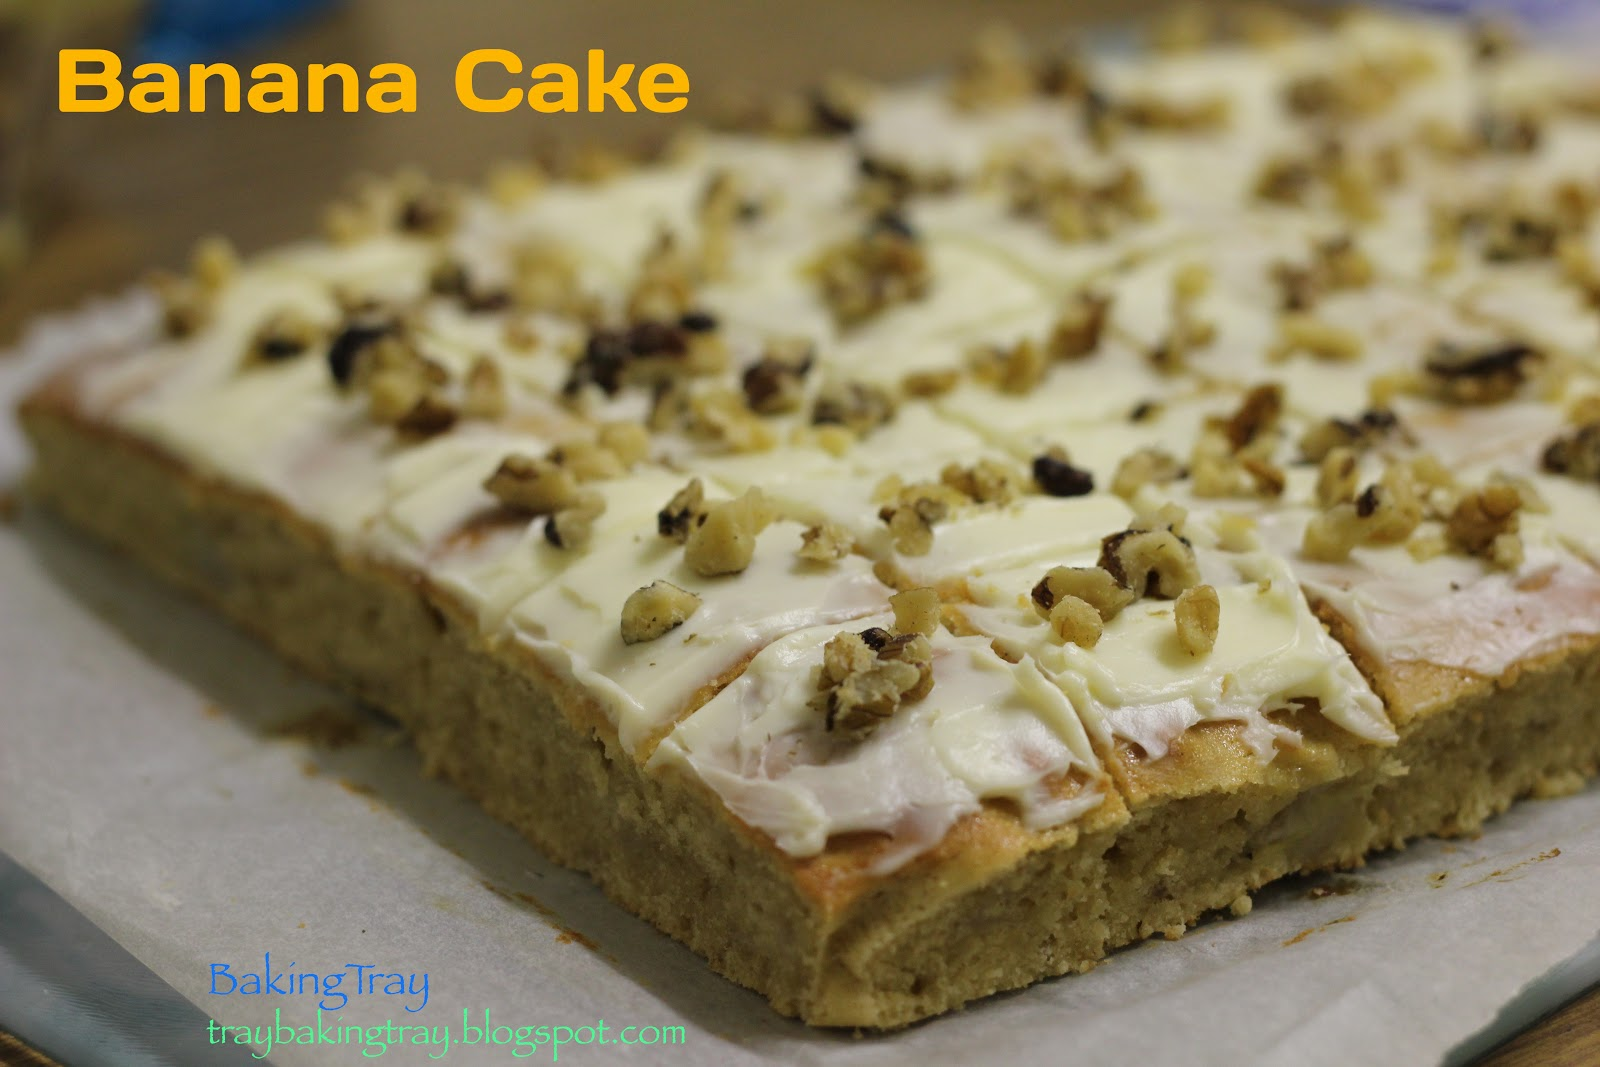 ... TRAY ~\_____/~: Work catering #9: Caramel slice & Banana Cake